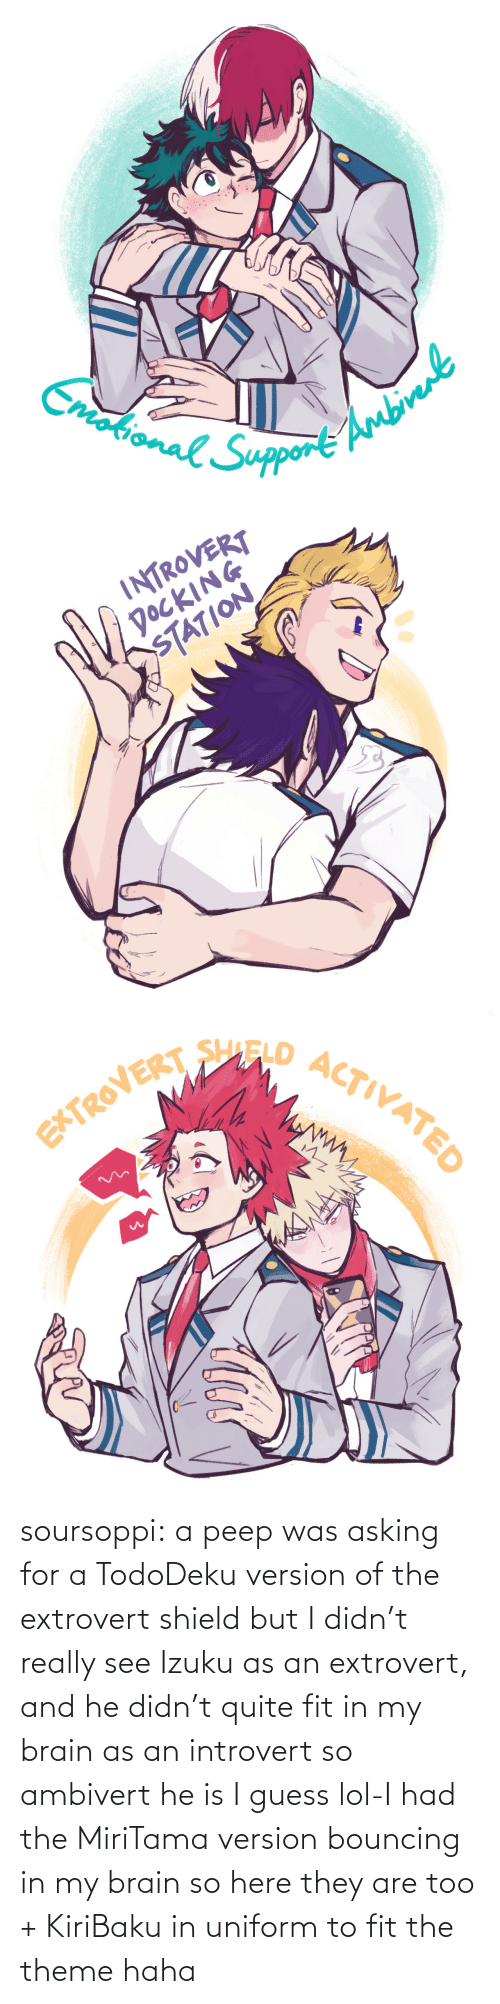 Introvert, Lol, and Target: soursoppi:  a peep was asking for a TodoDeku version of the extrovert shield but I didn't really see Izuku as an extrovert, and he didn't quite fit in my brain as an introvert so ambivert he is I guess lol-I had the MiriTama version bouncing in my brain so here they are too + KiriBaku in uniform to fit the theme haha